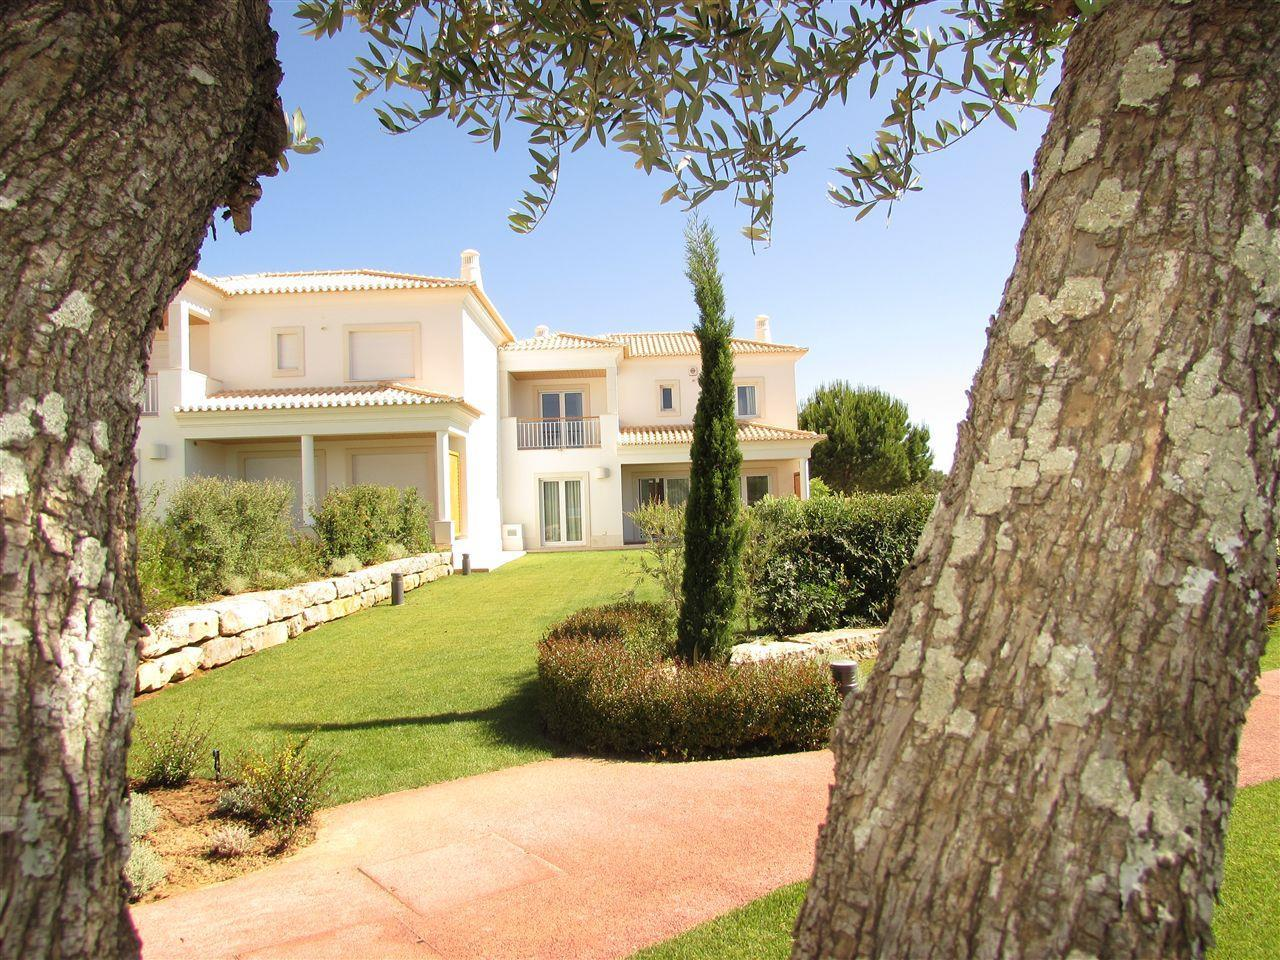 Moradia para Venda às Terraced house, 5 bedrooms, for Sale Loule, Algarve Portugal